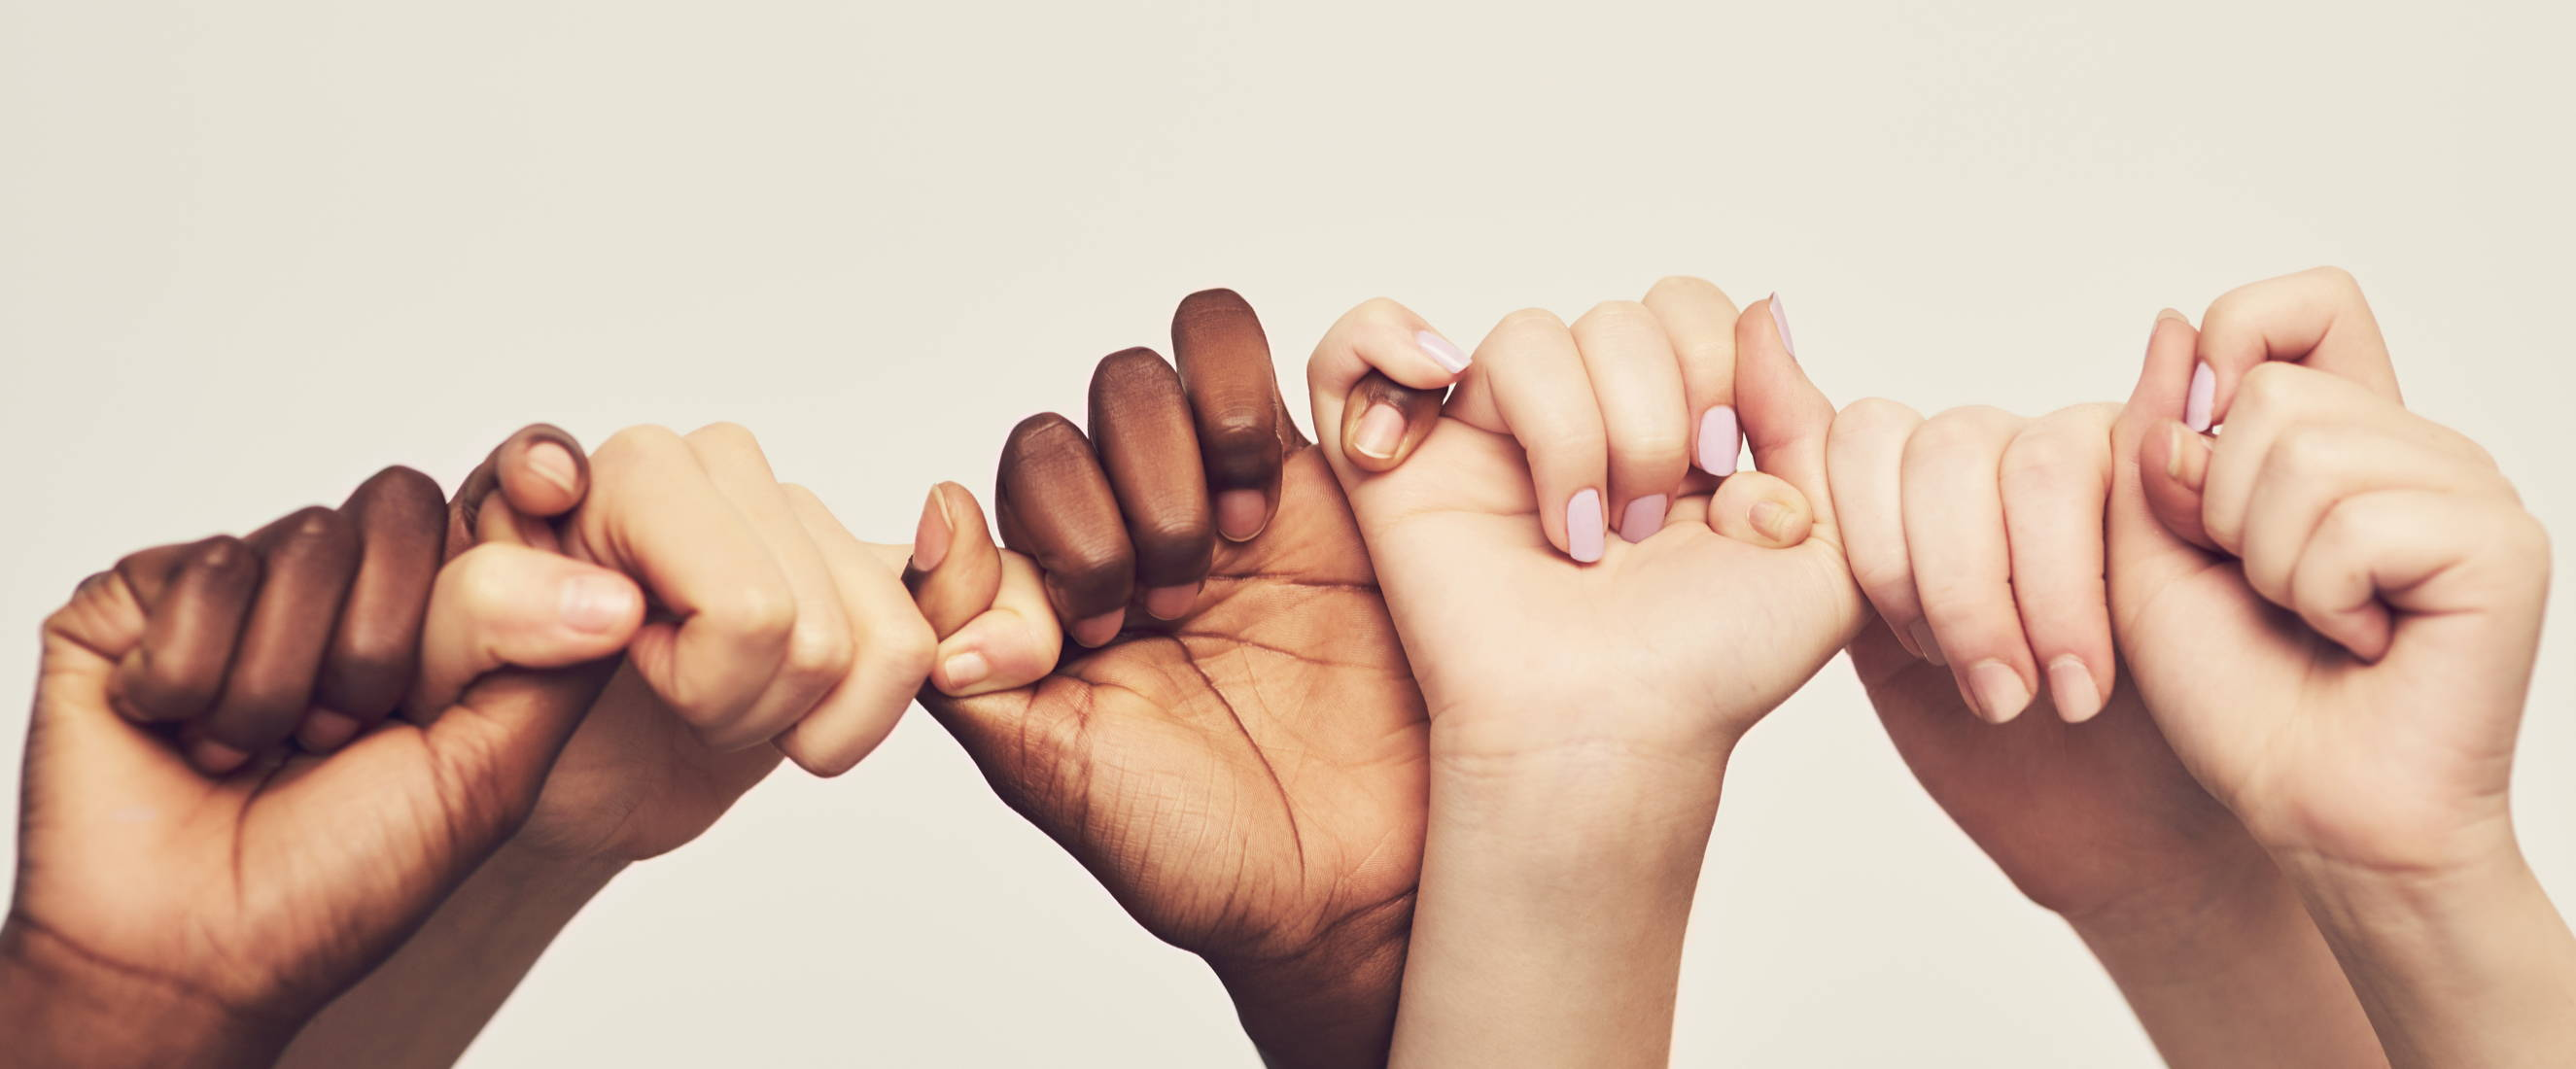 Hands of different skin tones linking fingers to make a promise.